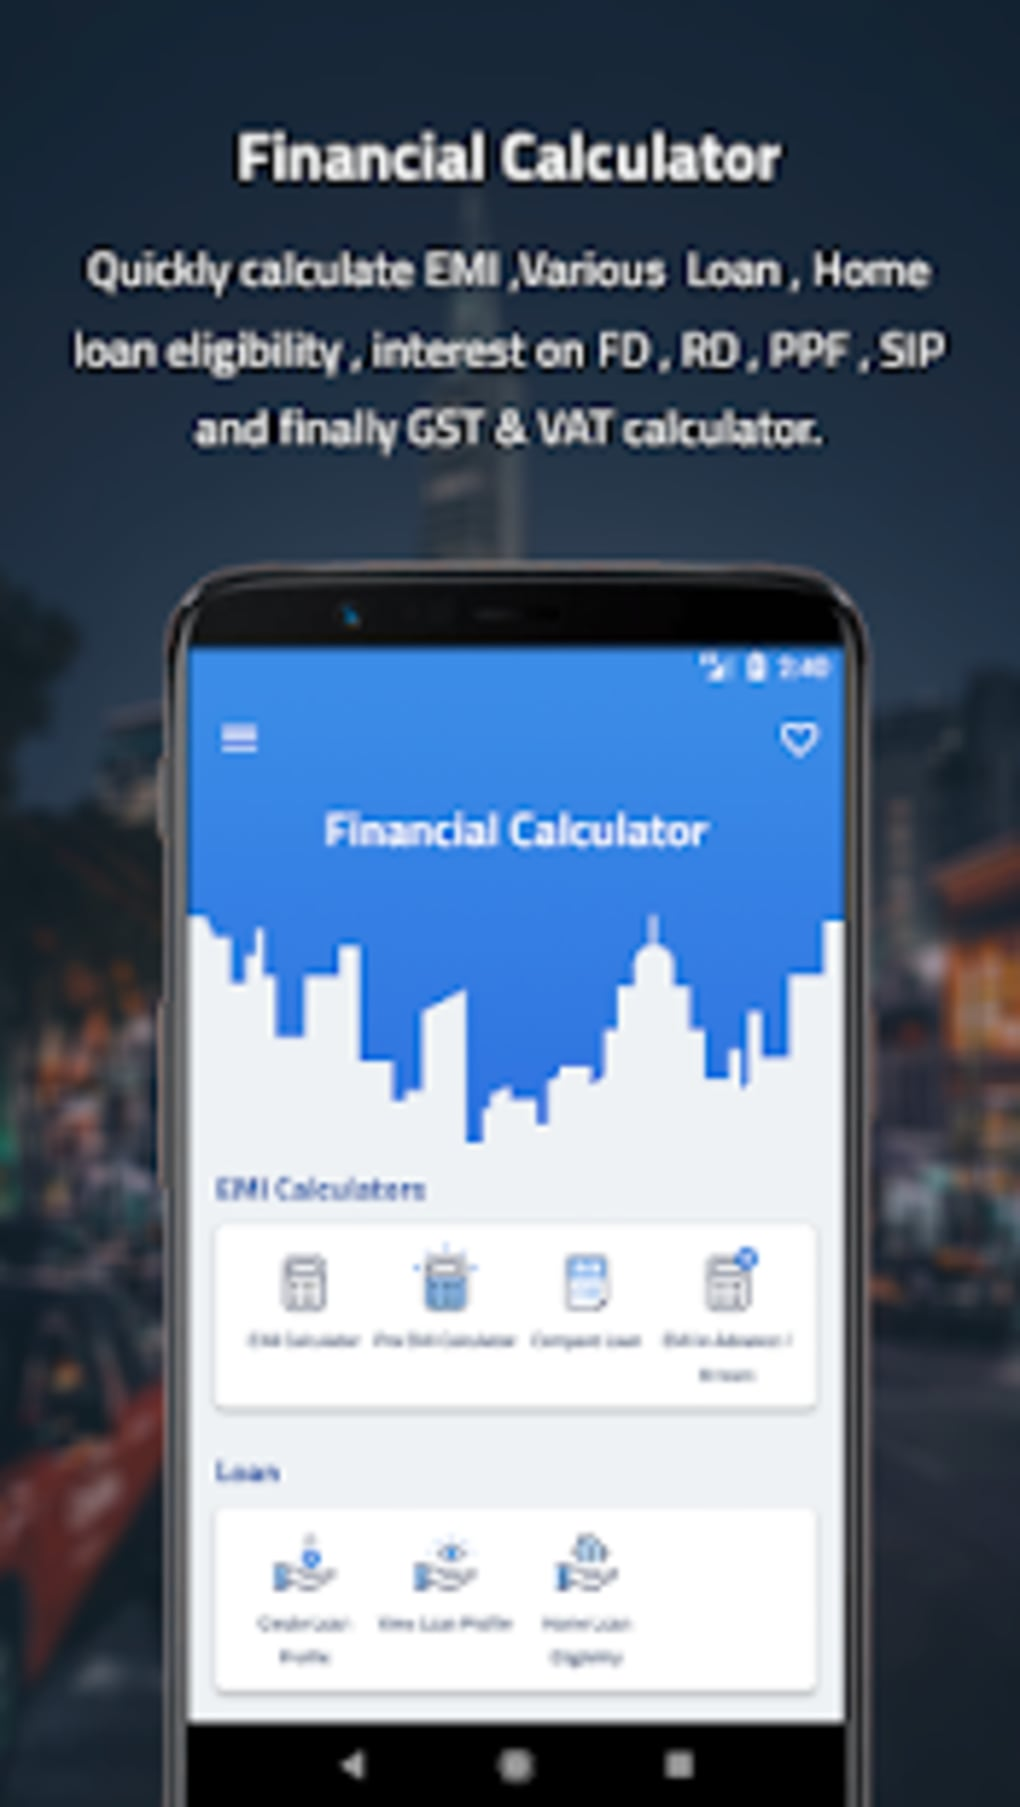 EMI Financial Calculator PRO for Android - Download